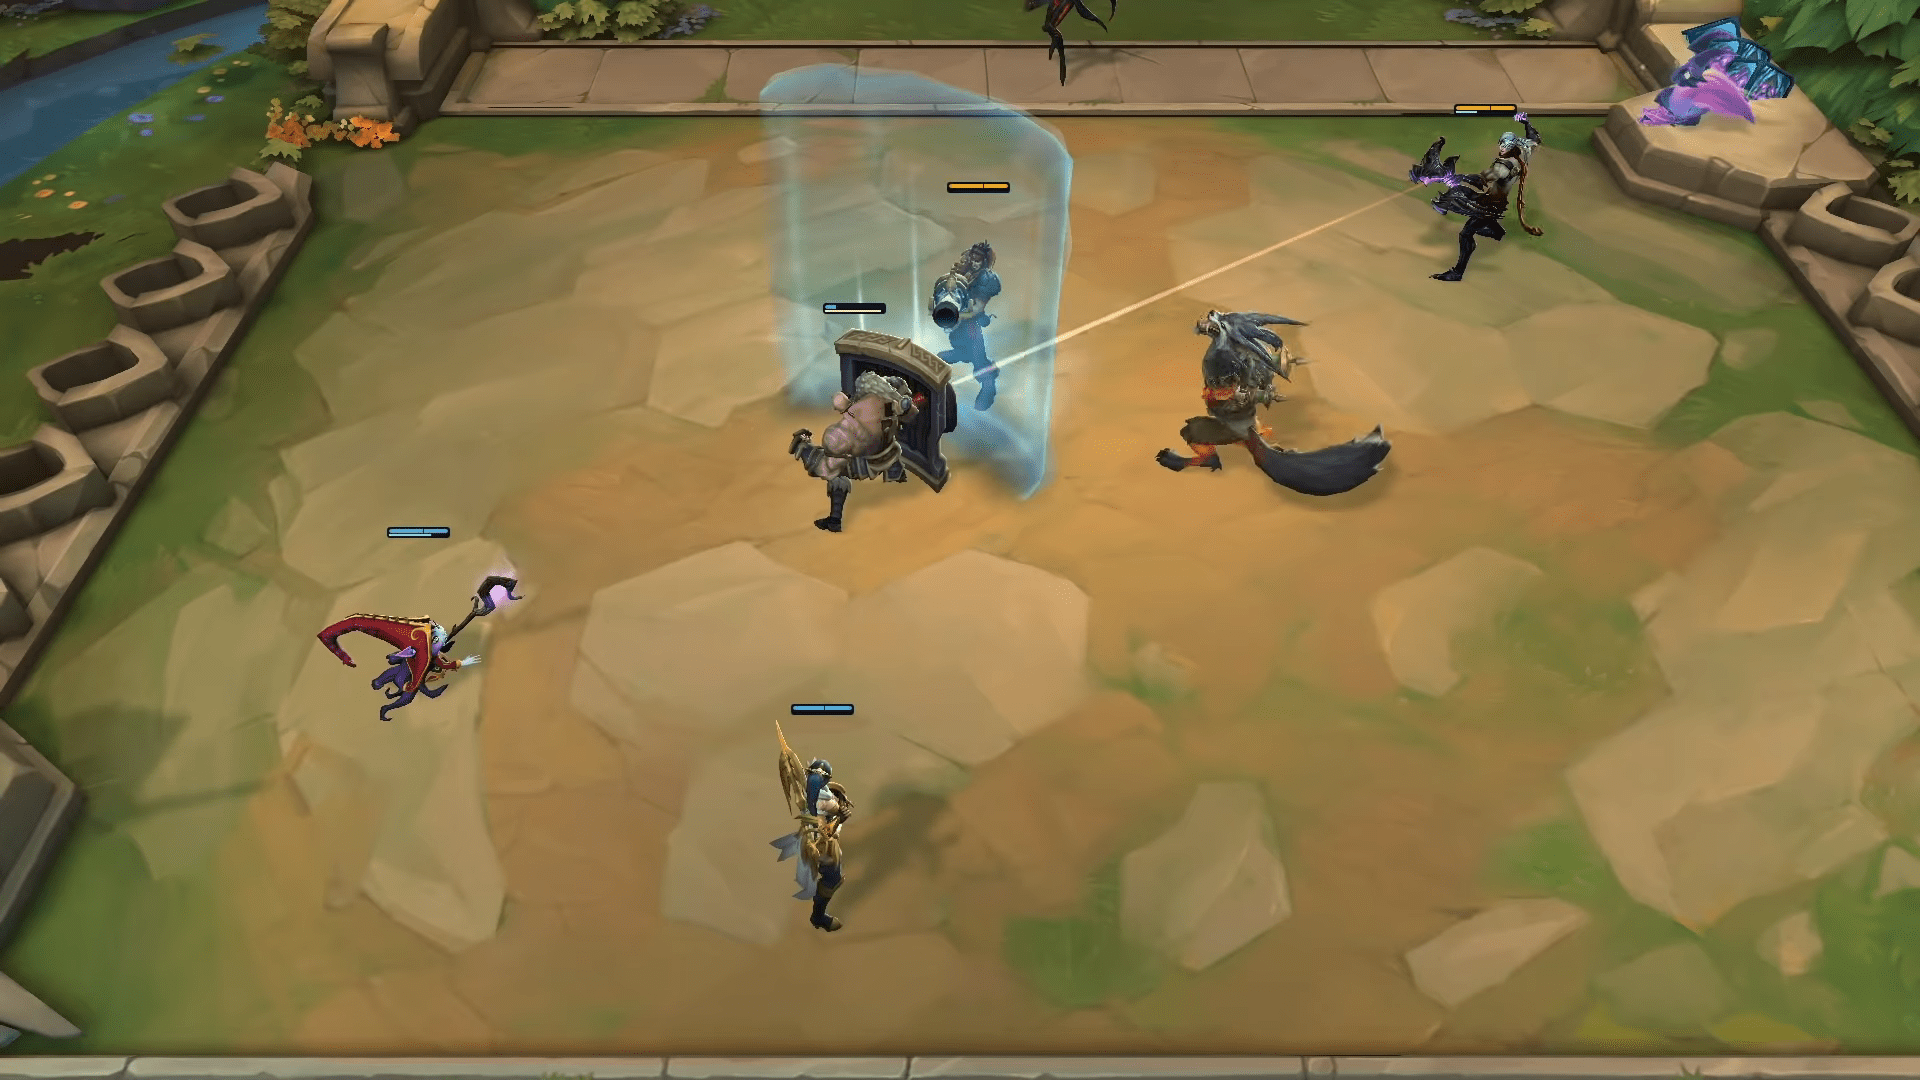 Teamfight Tactics Is New And Full Of Bugs – But This One Can Determine A Win Or Loss